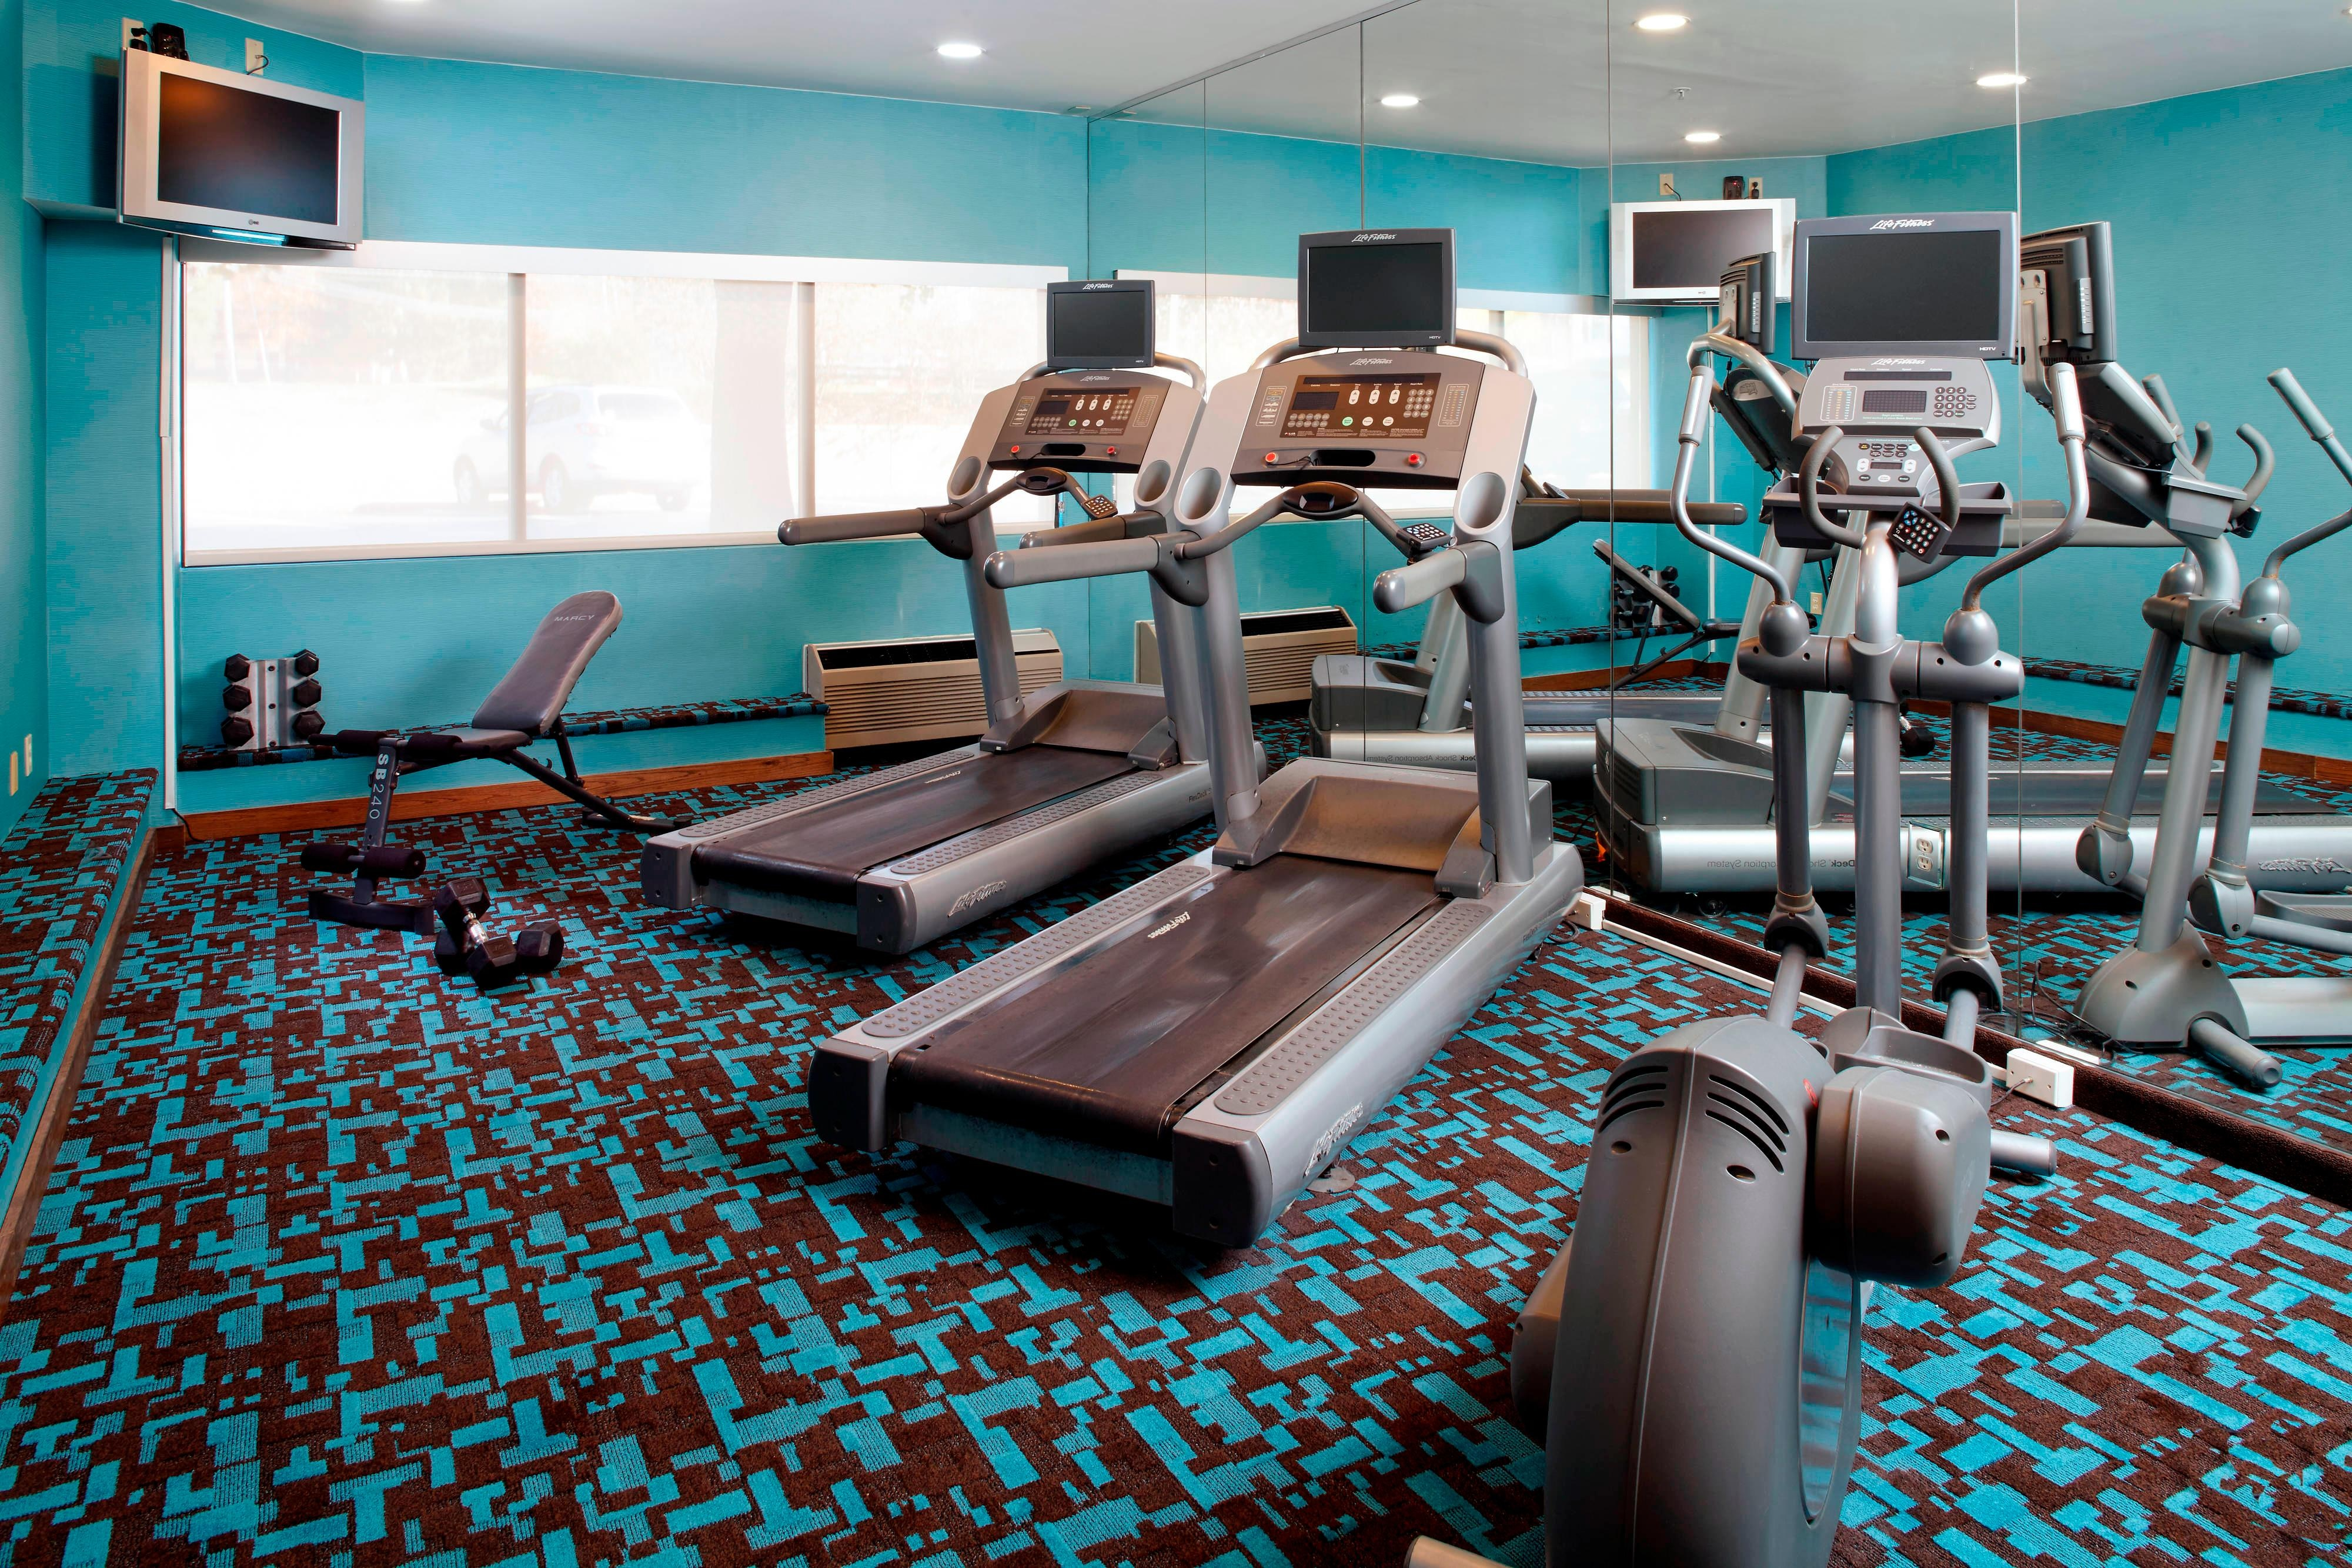 Fitness center at Parsippany hotel